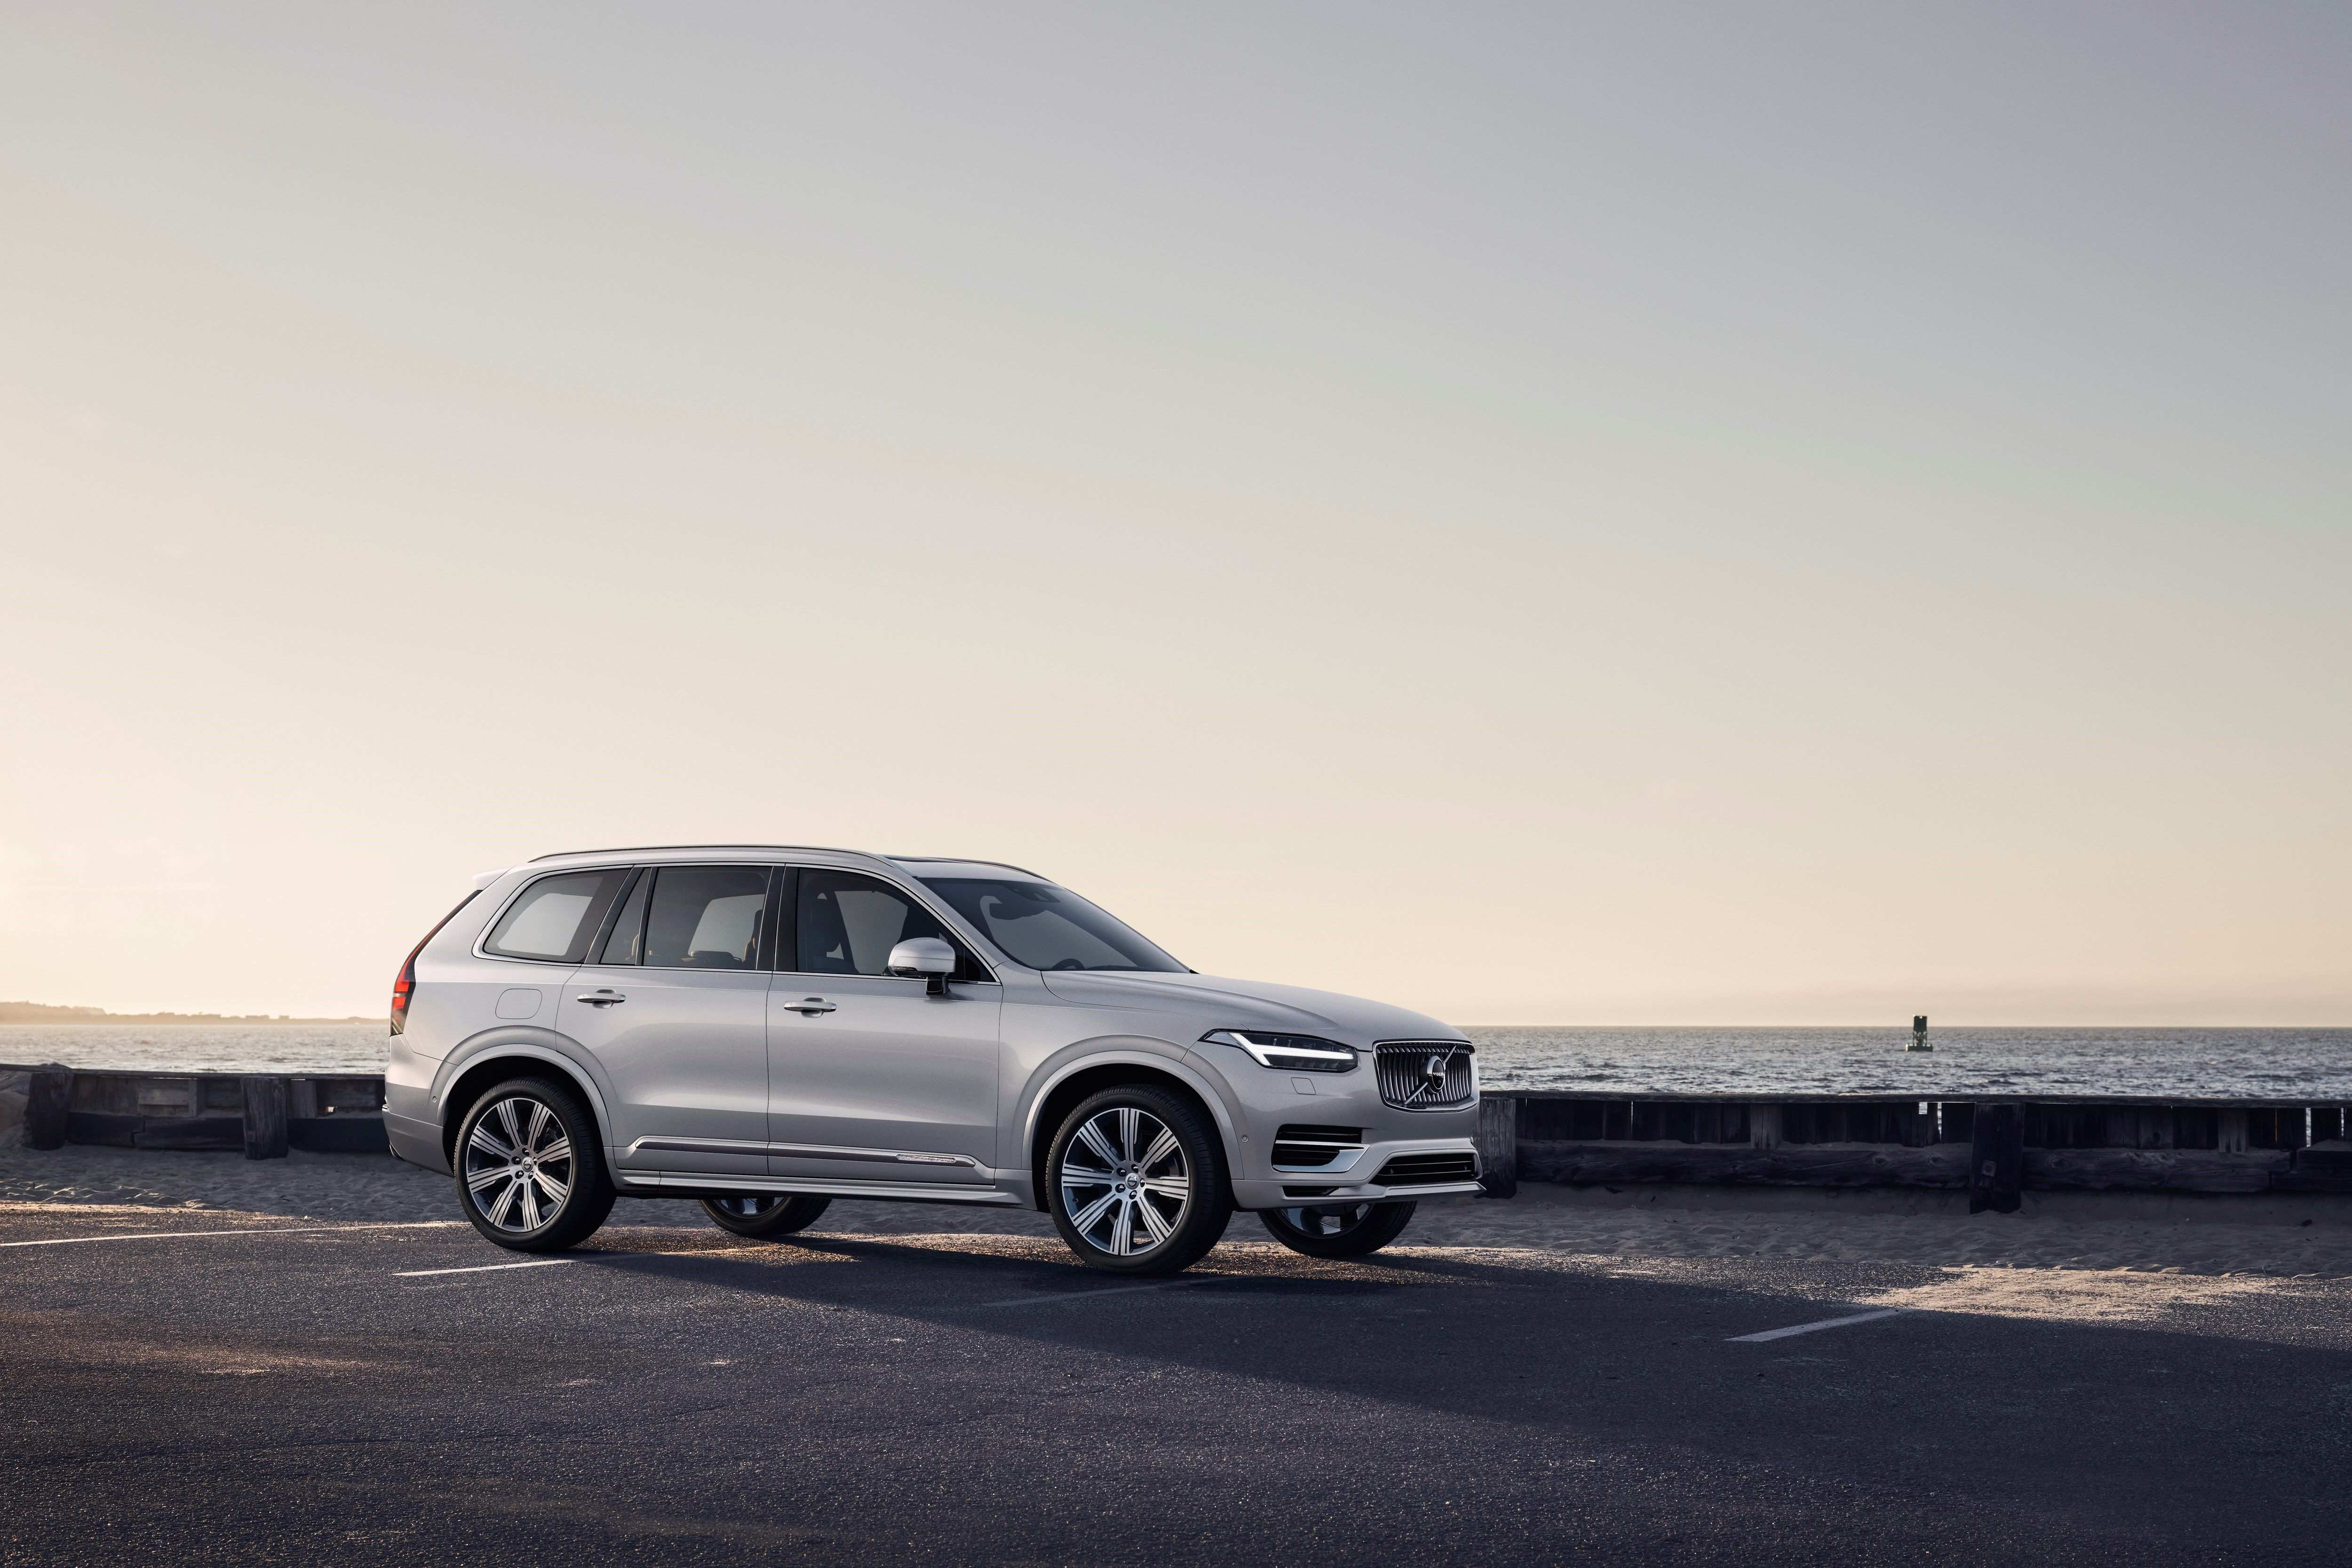 65 Great Volvo Xc90 Facelift 2019 Picture by Volvo Xc90 Facelift 2019